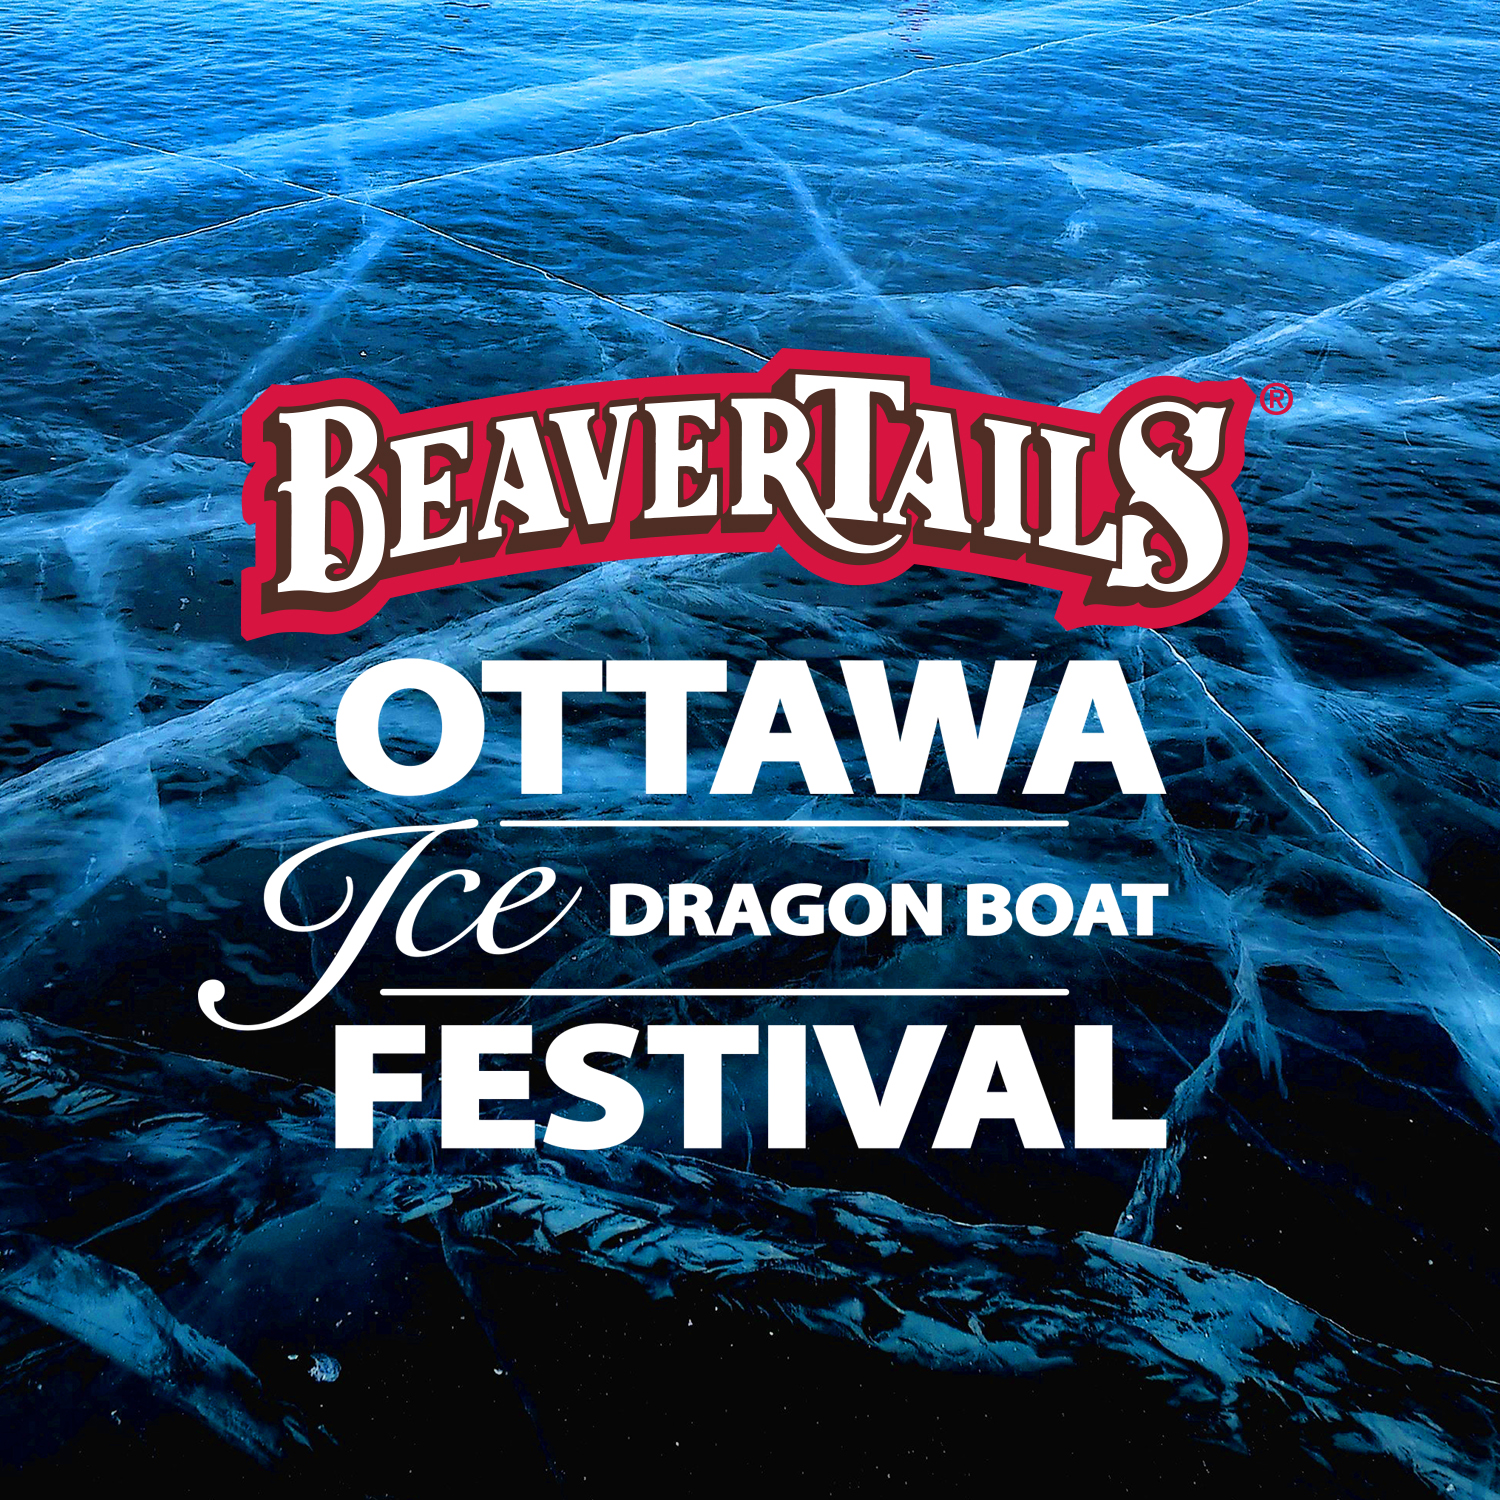 BeaverTails Ottawa Ice Dragon Boat Festival